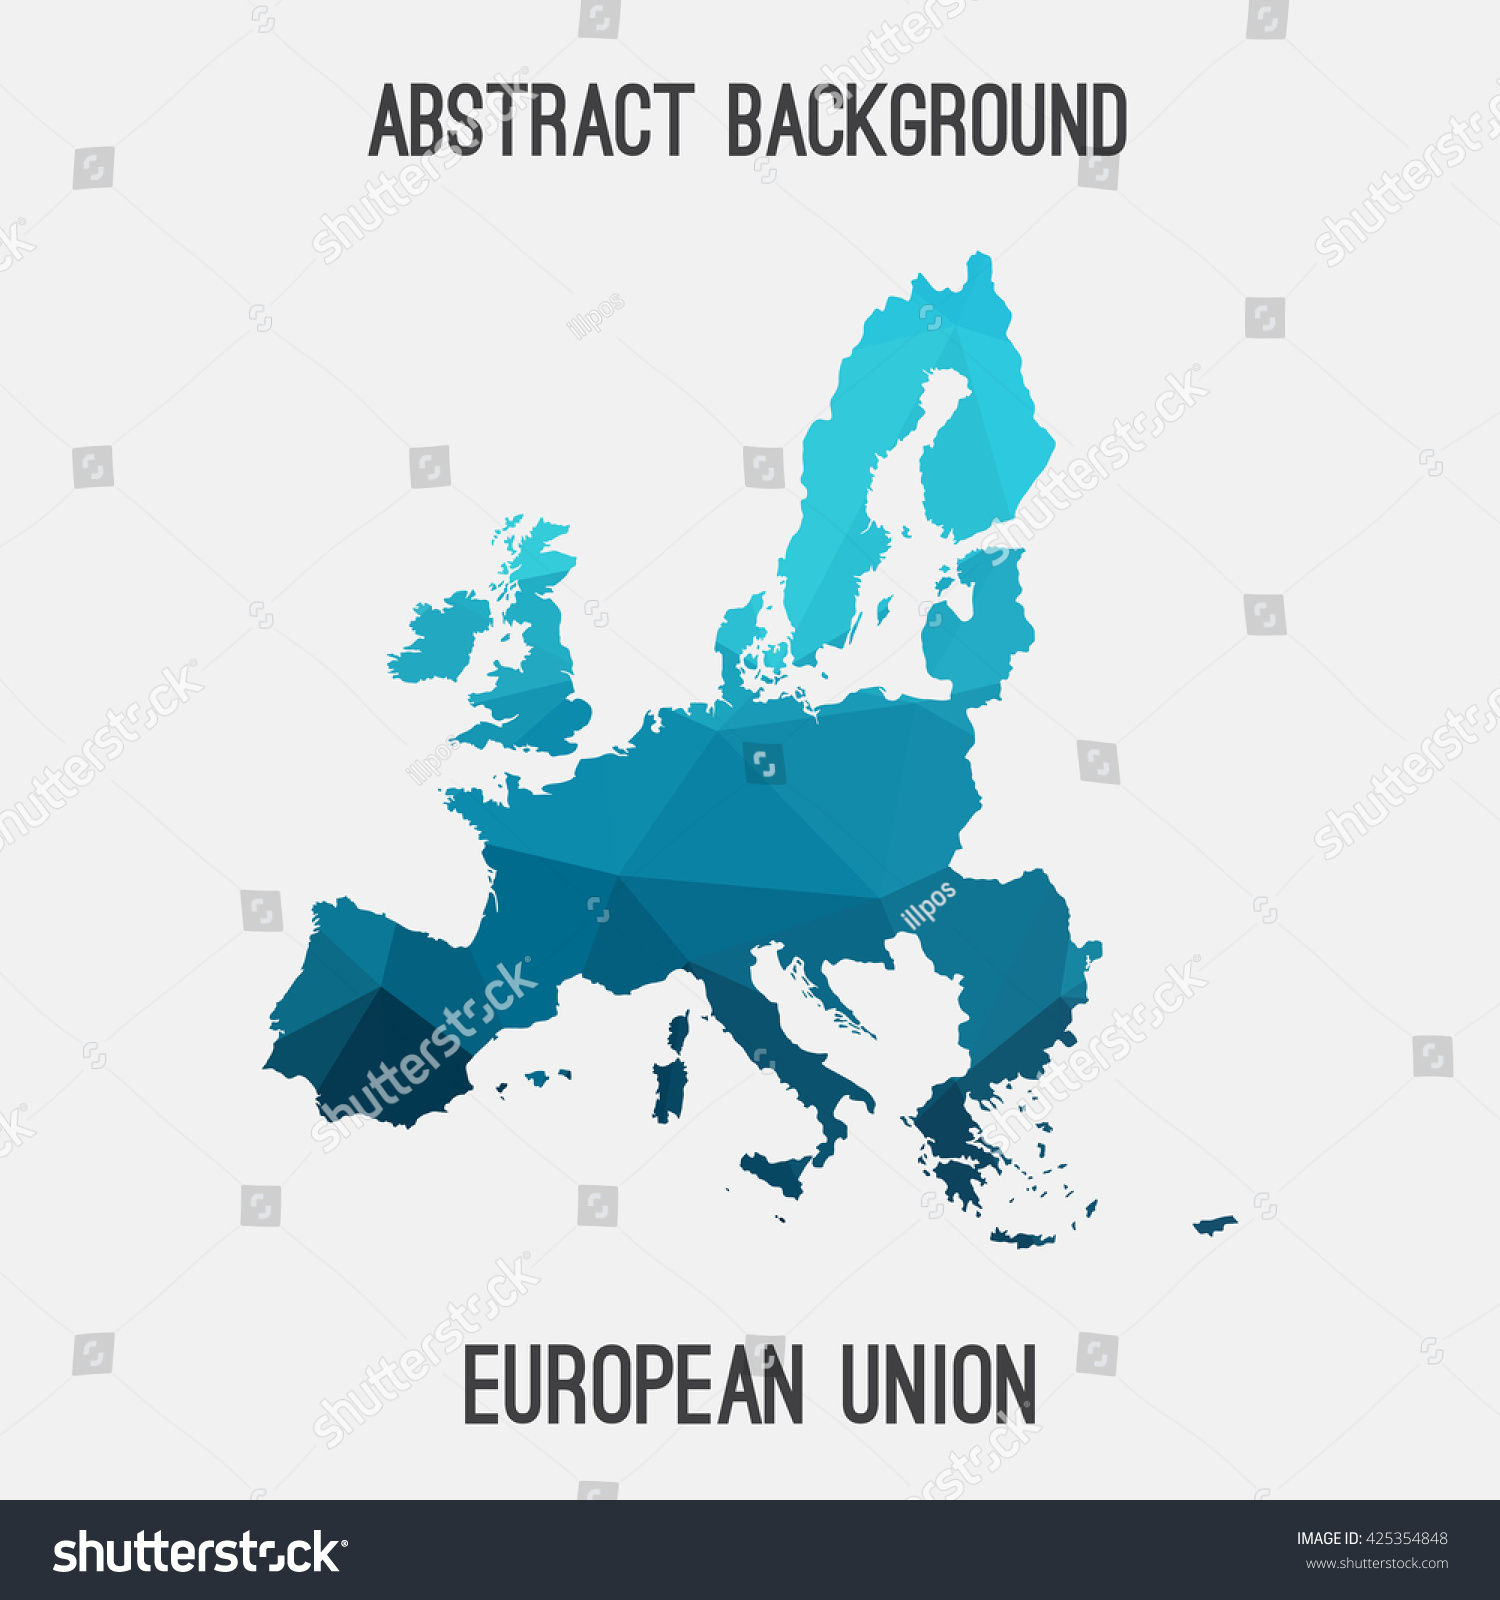 European Union EU Map Geometric Polygonal Style Abstract Stock ...